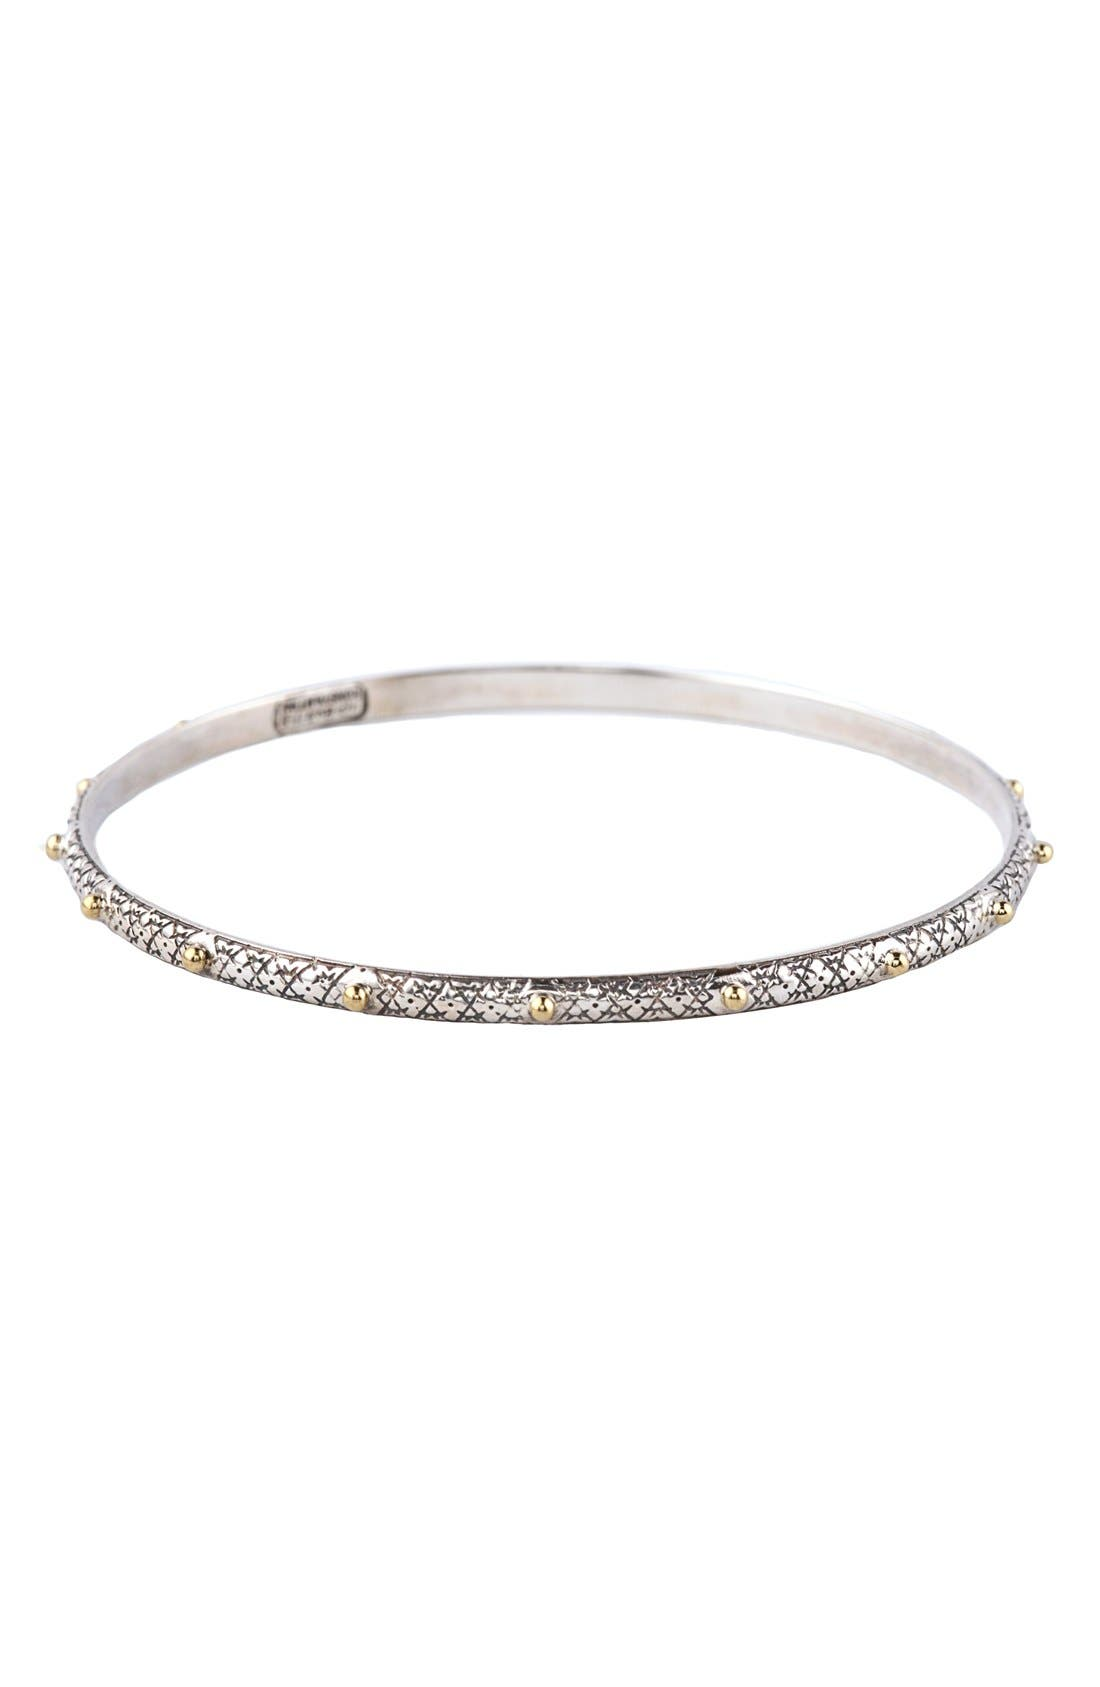 Konstantino 'Classics' Two-Tone Bangle